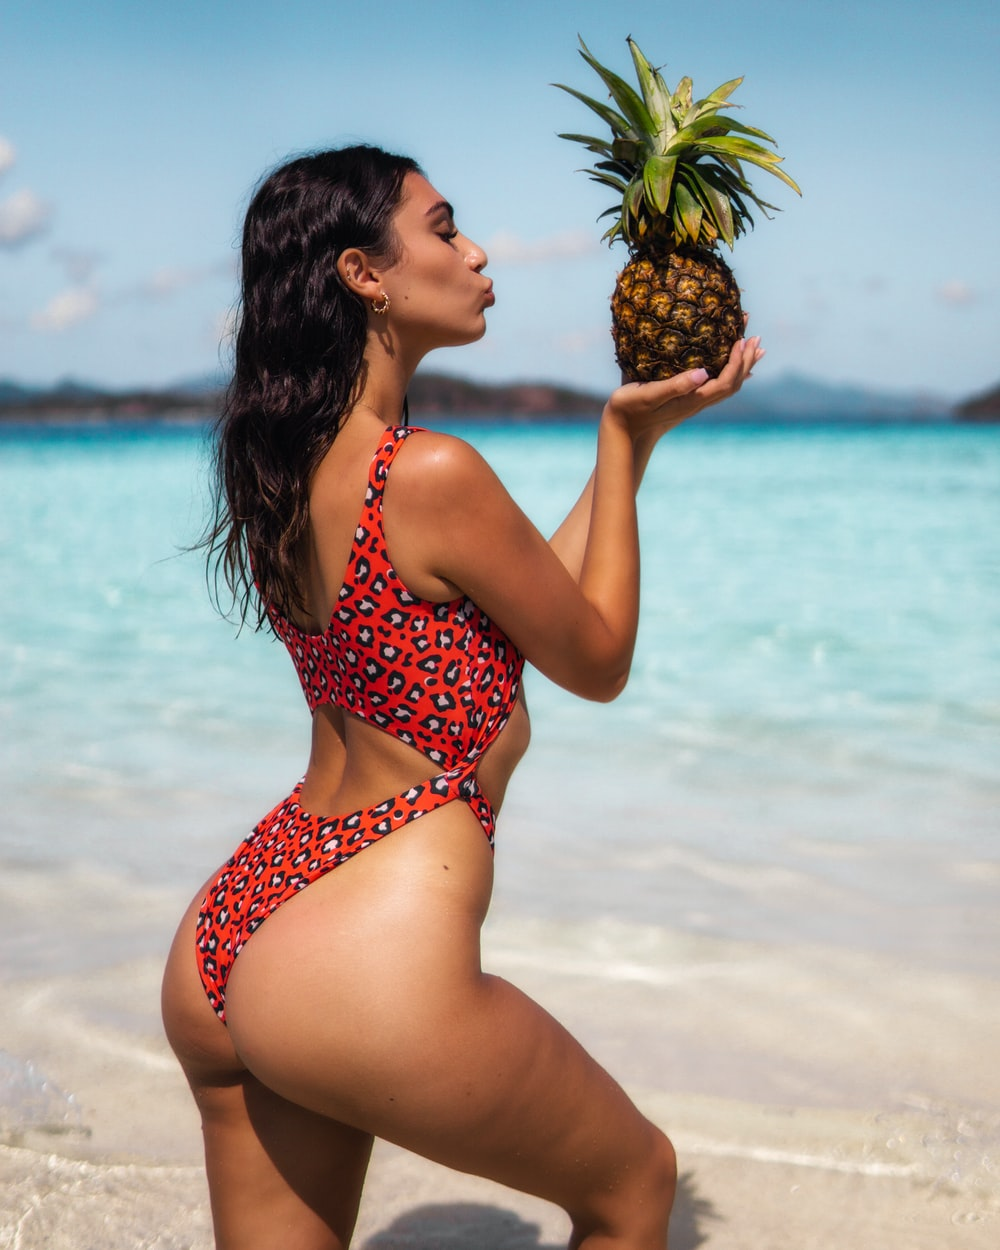 woman in red and white polka dot bikini holding pineapple on beach during daytime